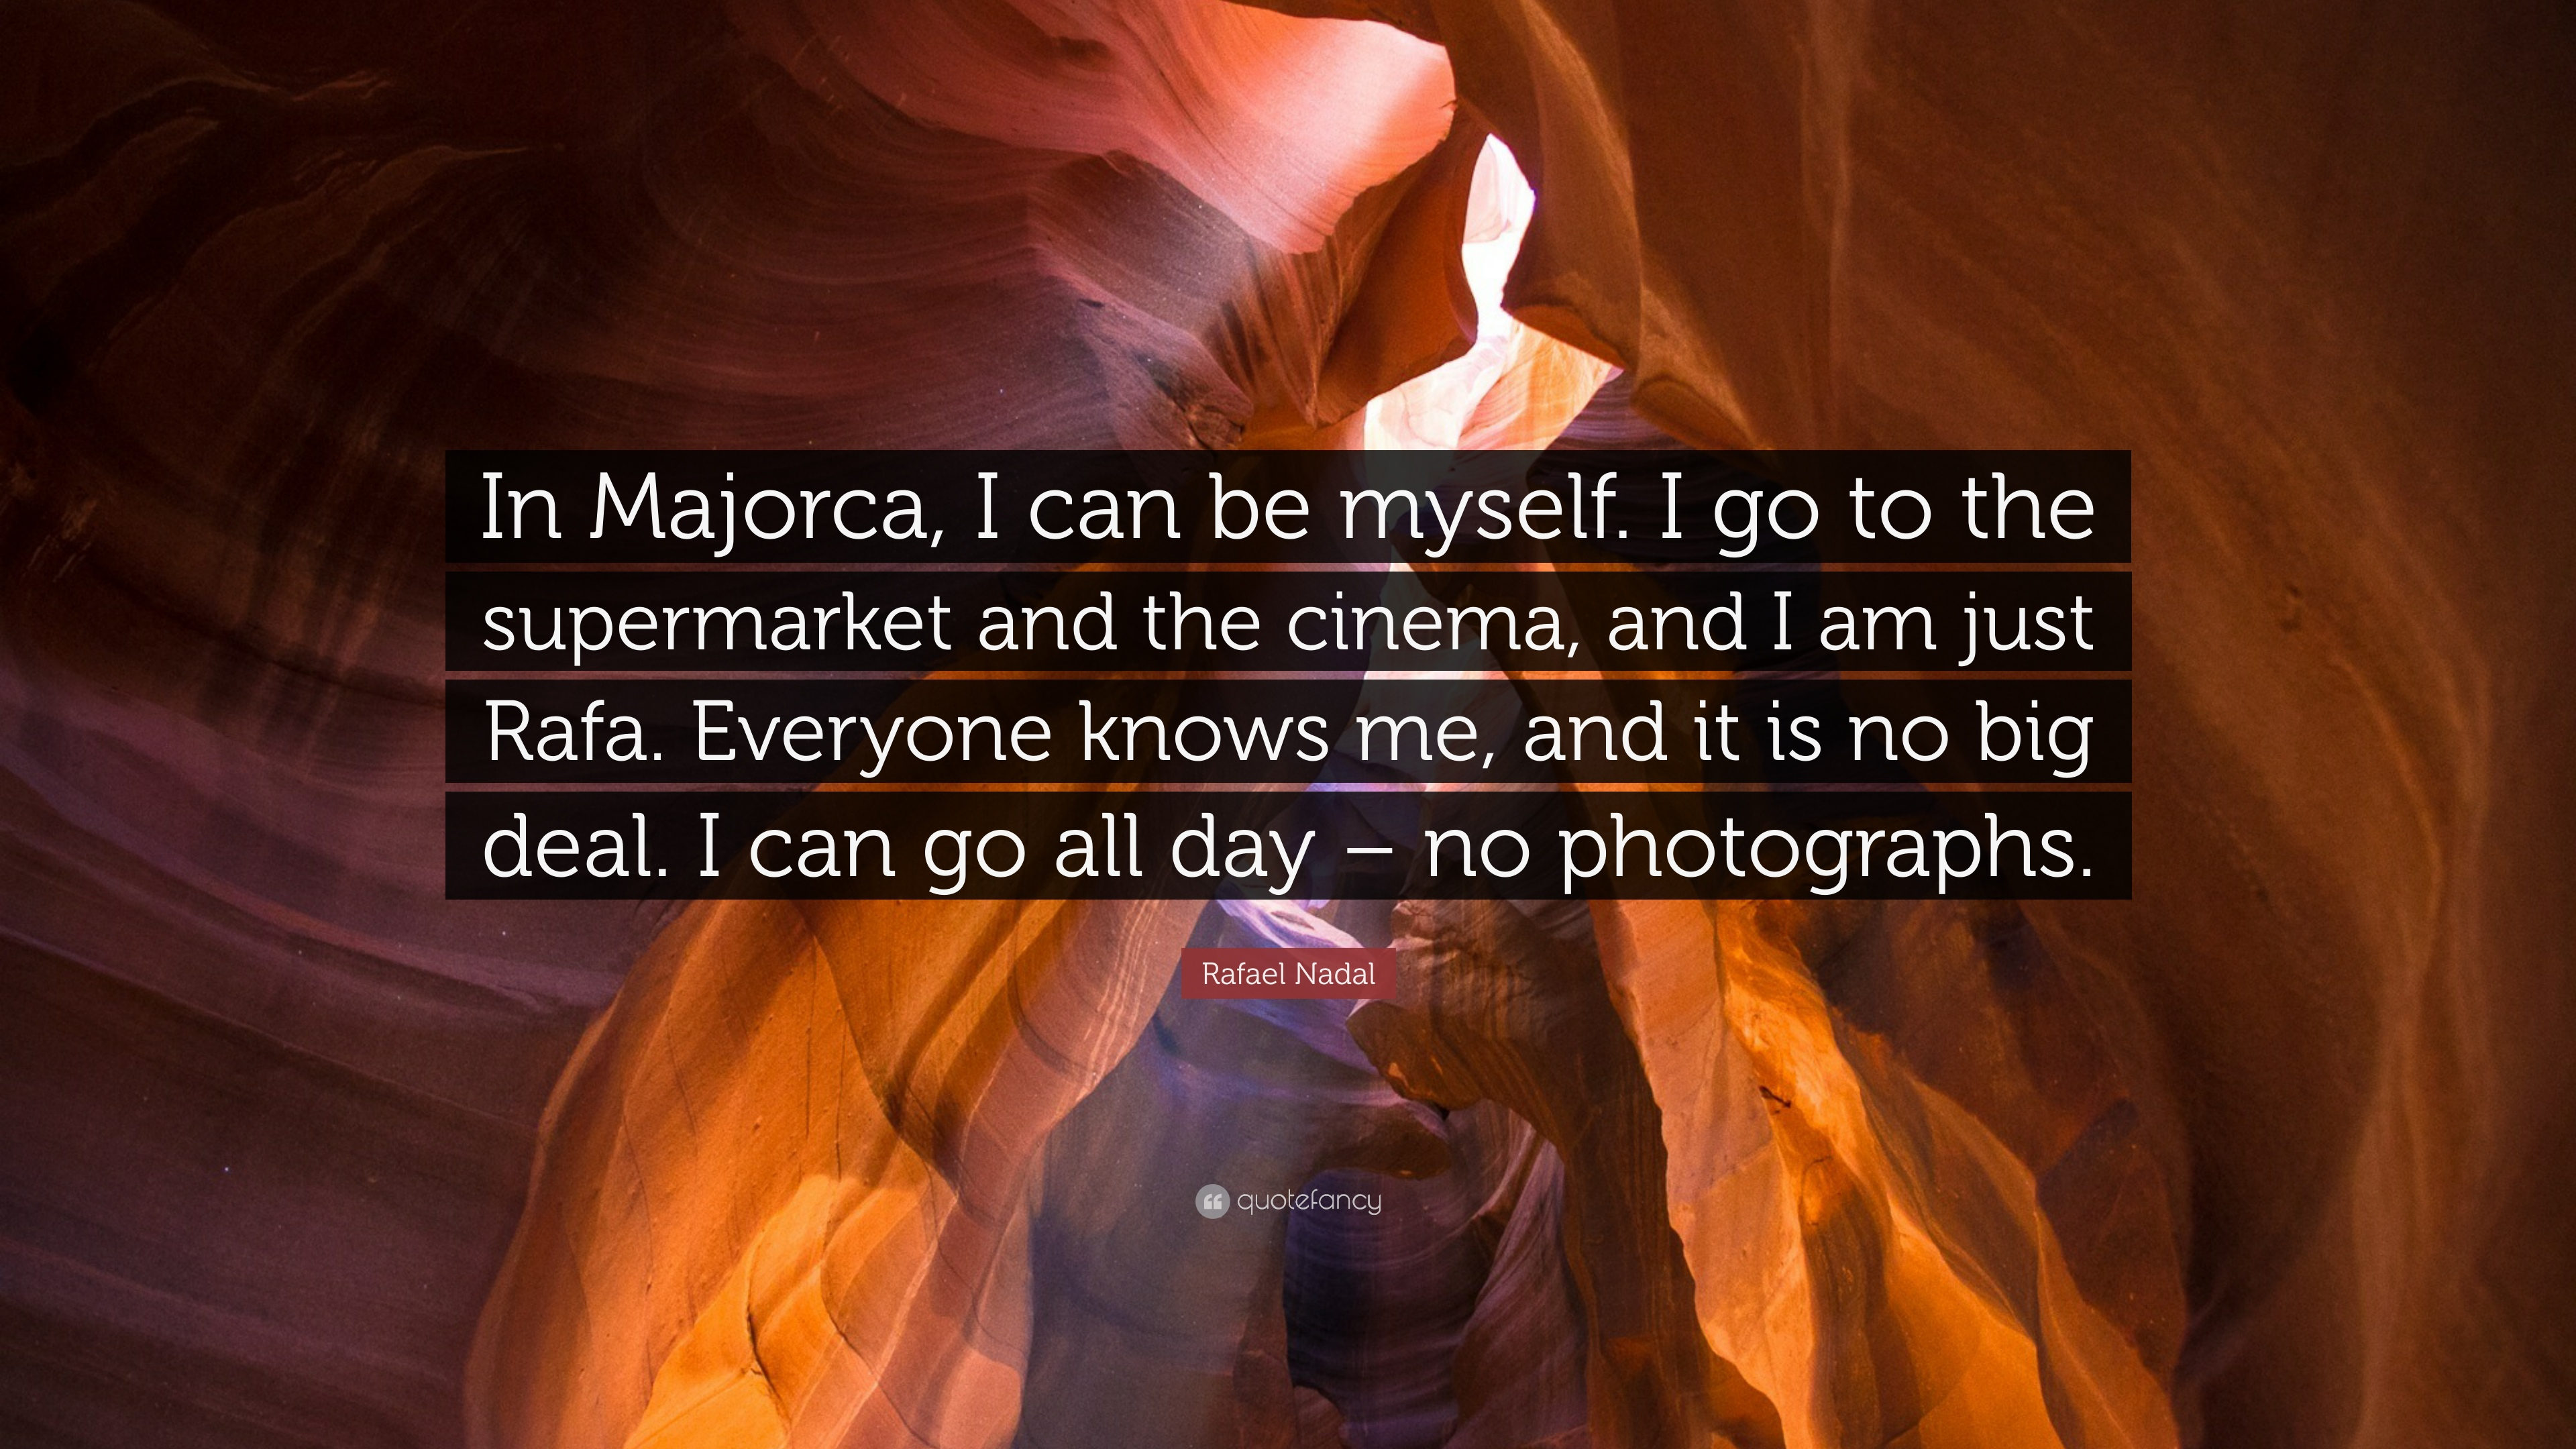 Rafael Nadal Quote In Majorca I Can Be Myself I Go To The Supermarket And The Cinema And I Am Just Rafa Everyone Knows Me And It Is No 7 Wallpapers Quotefancy